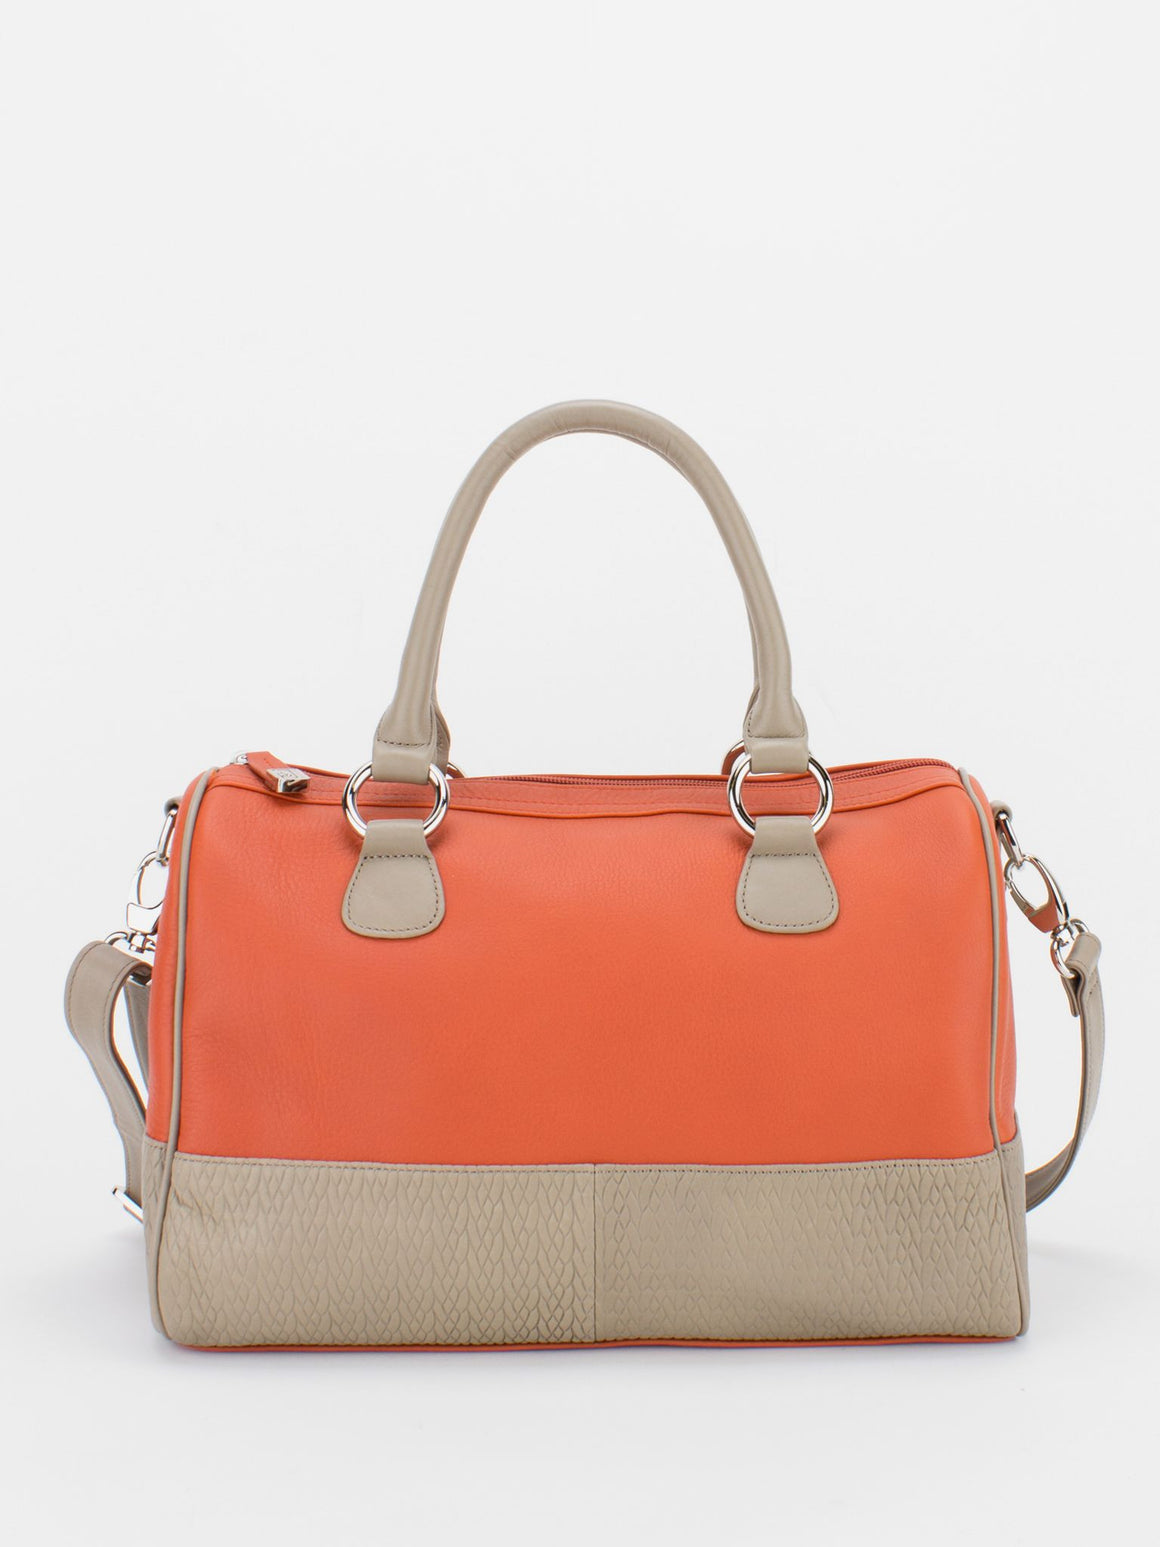 MAUREEN Natural Grain Colour Block Satchel - Orange/Beige